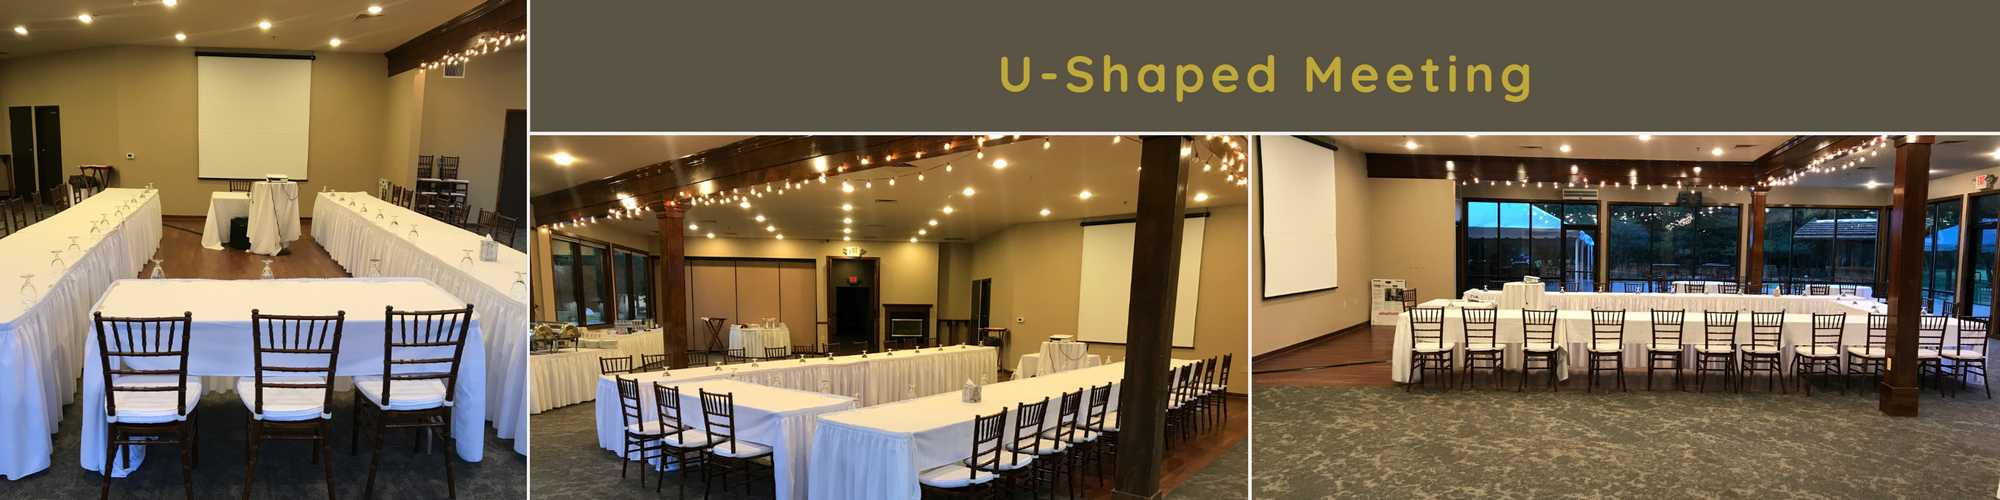 meeting room in ann arbor with lighting